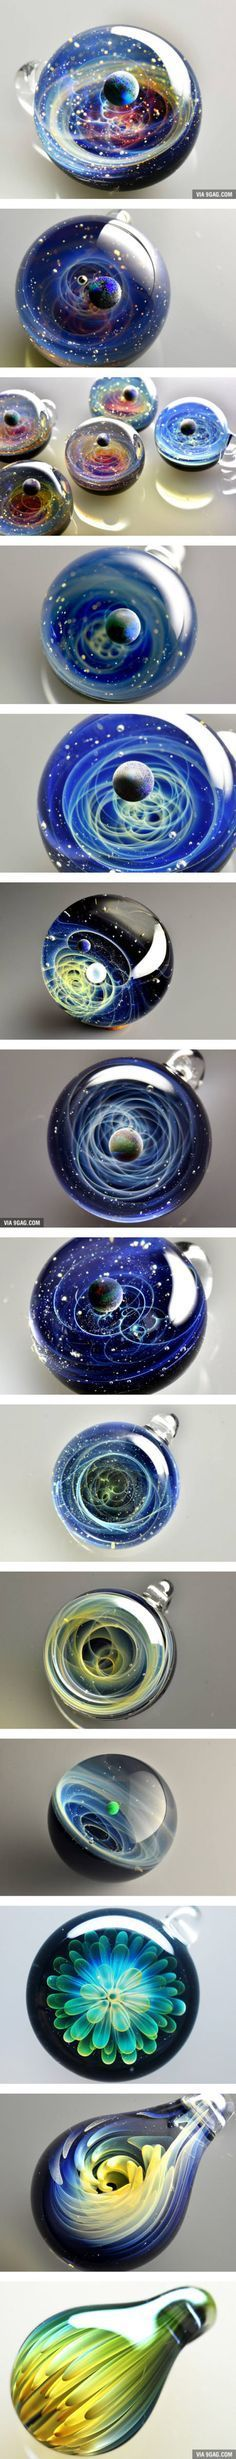 Extraordinary Space Glass With Solar Systems And Flowers Encased In It (By Satoshi Tomizu)